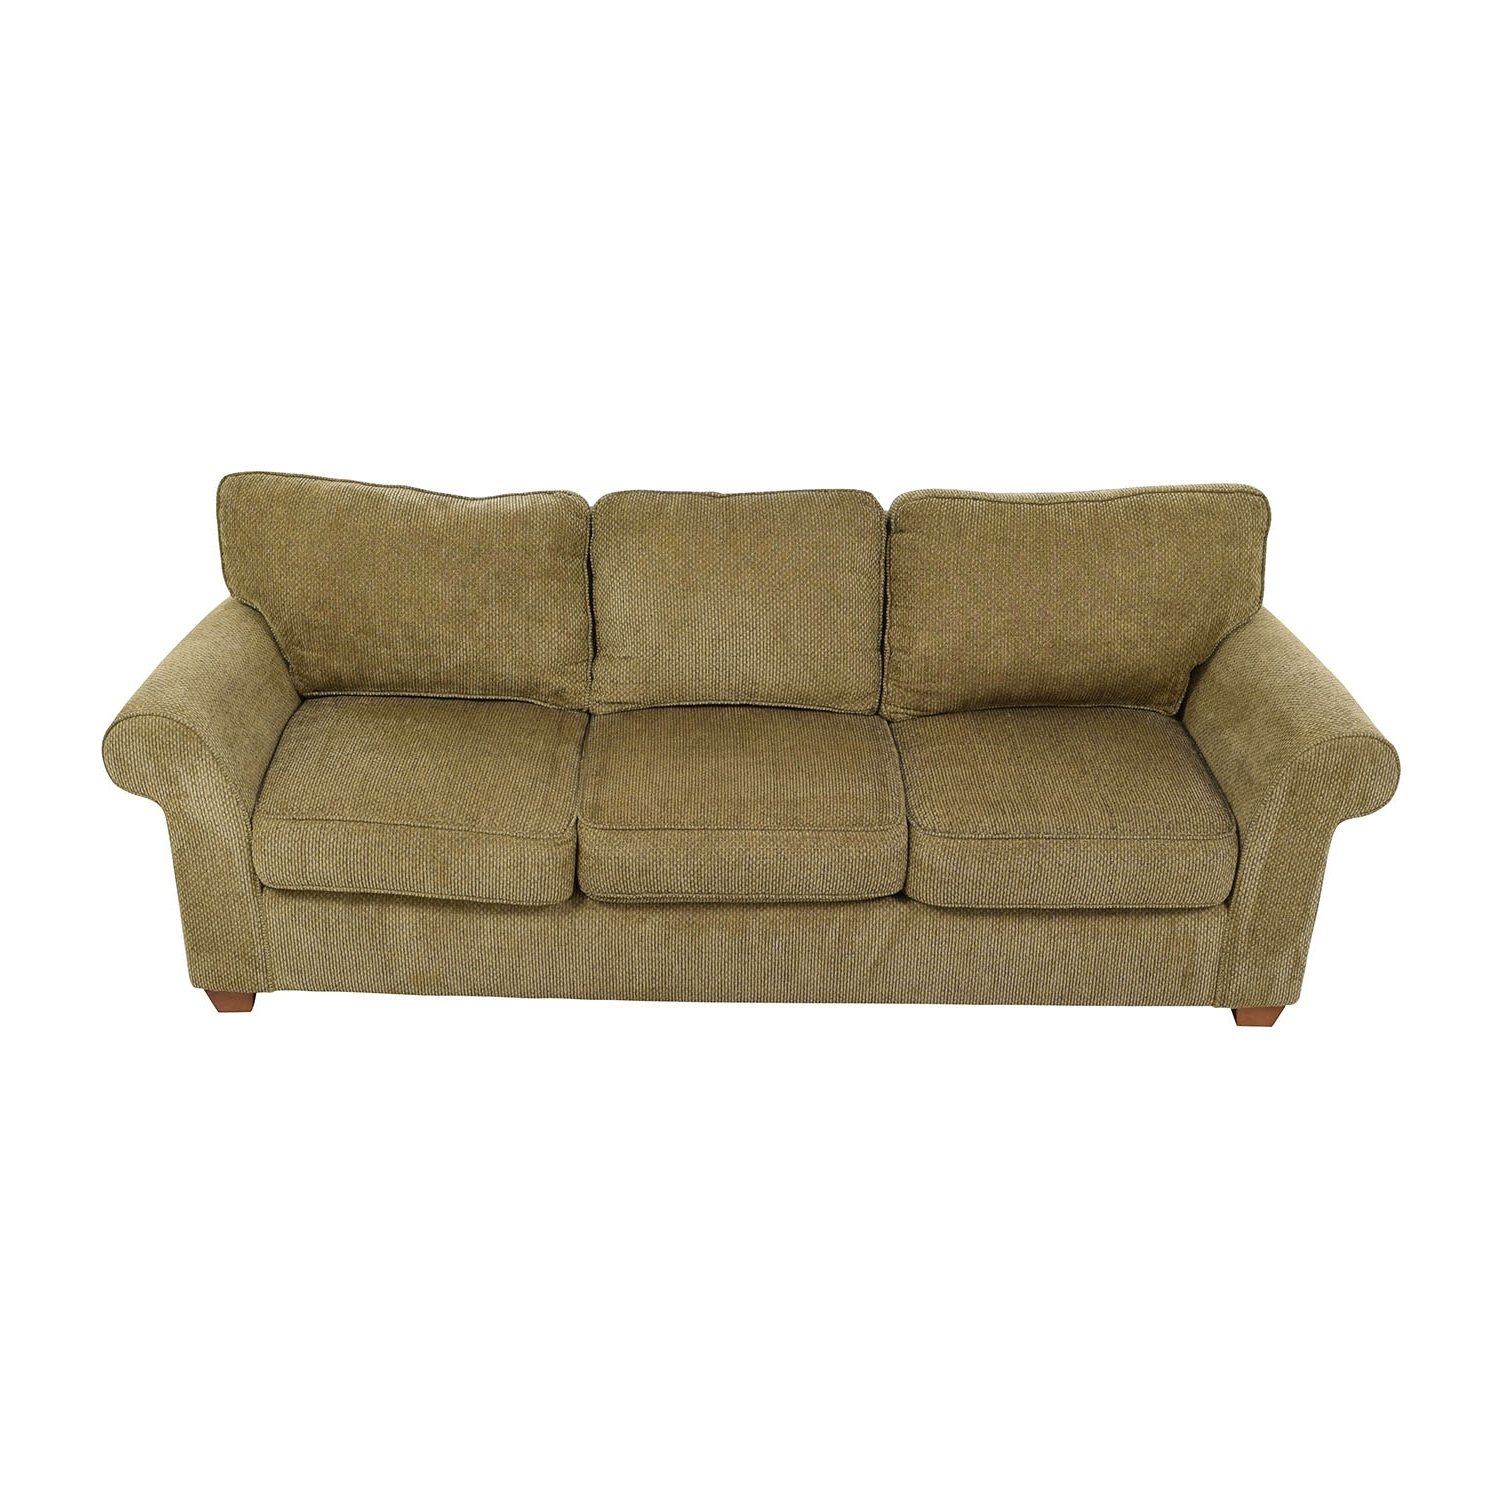 [%90% Off – Bloomingdale's Bloomingdale's Beige Tweed Fabric Sofa Regarding Well Liked Tweed Fabric Sofas|Tweed Fabric Sofas Inside Well Known 90% Off – Bloomingdale's Bloomingdale's Beige Tweed Fabric Sofa|Current Tweed Fabric Sofas With Regard To 90% Off – Bloomingdale's Bloomingdale's Beige Tweed Fabric Sofa|Most Popular 90% Off – Bloomingdale's Bloomingdale's Beige Tweed Fabric Sofa Throughout Tweed Fabric Sofas%] (View 2 of 15)